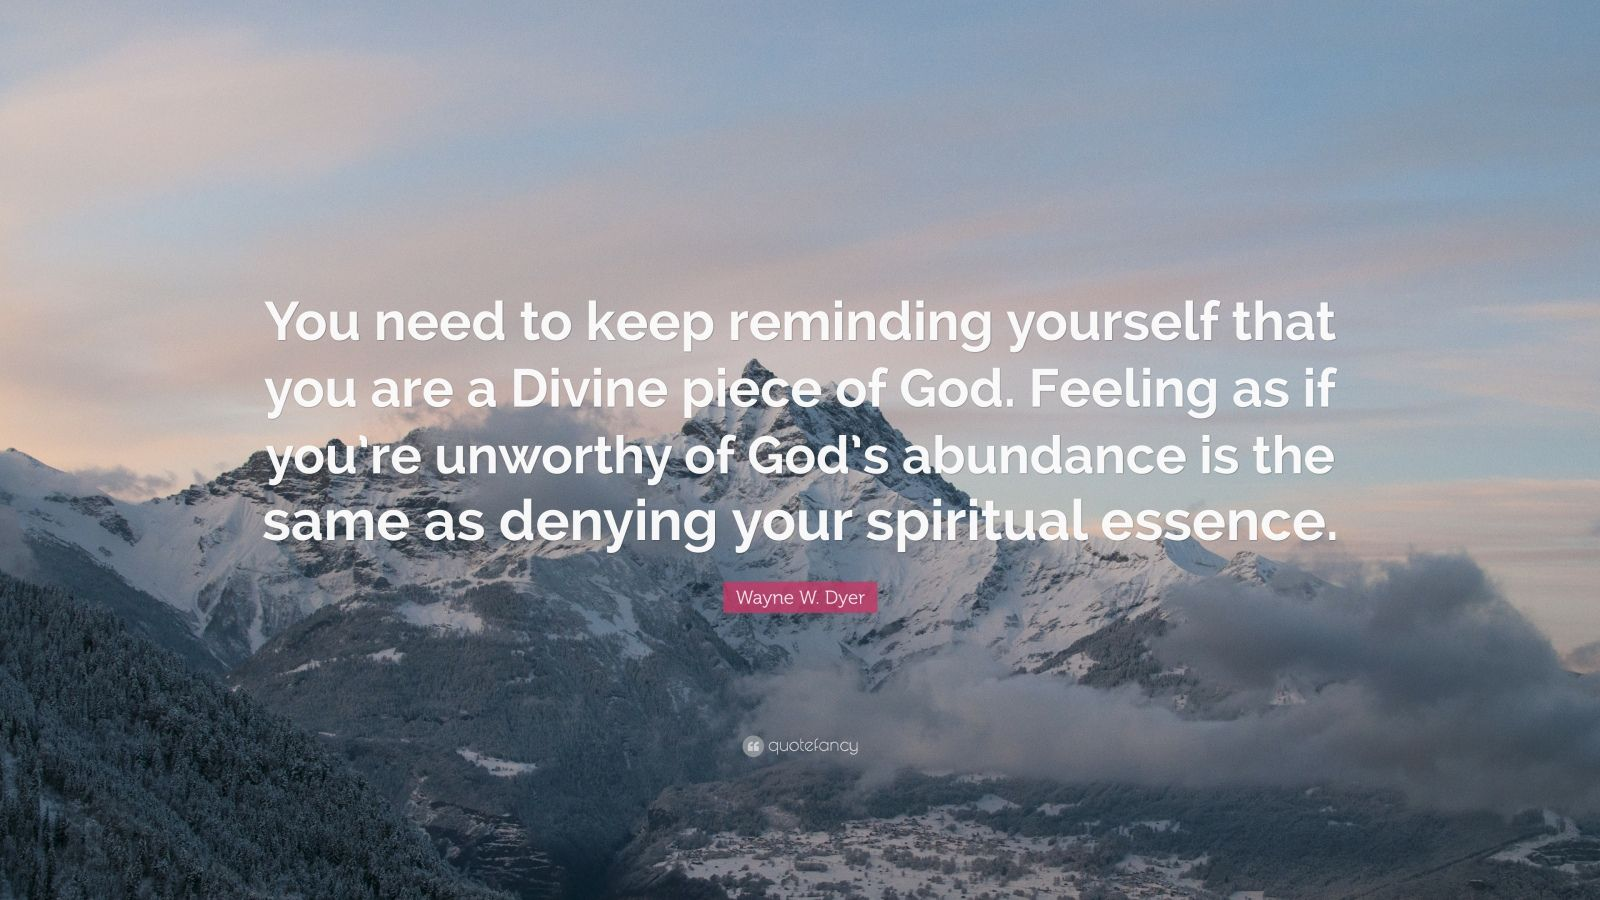 """Wayne W. Dyer Quote: """"You need to keep reminding yourself that you are a Divine piece of God. Feeling as if you're unworthy of God's abundance is the same as denying your spiritual essence."""""""